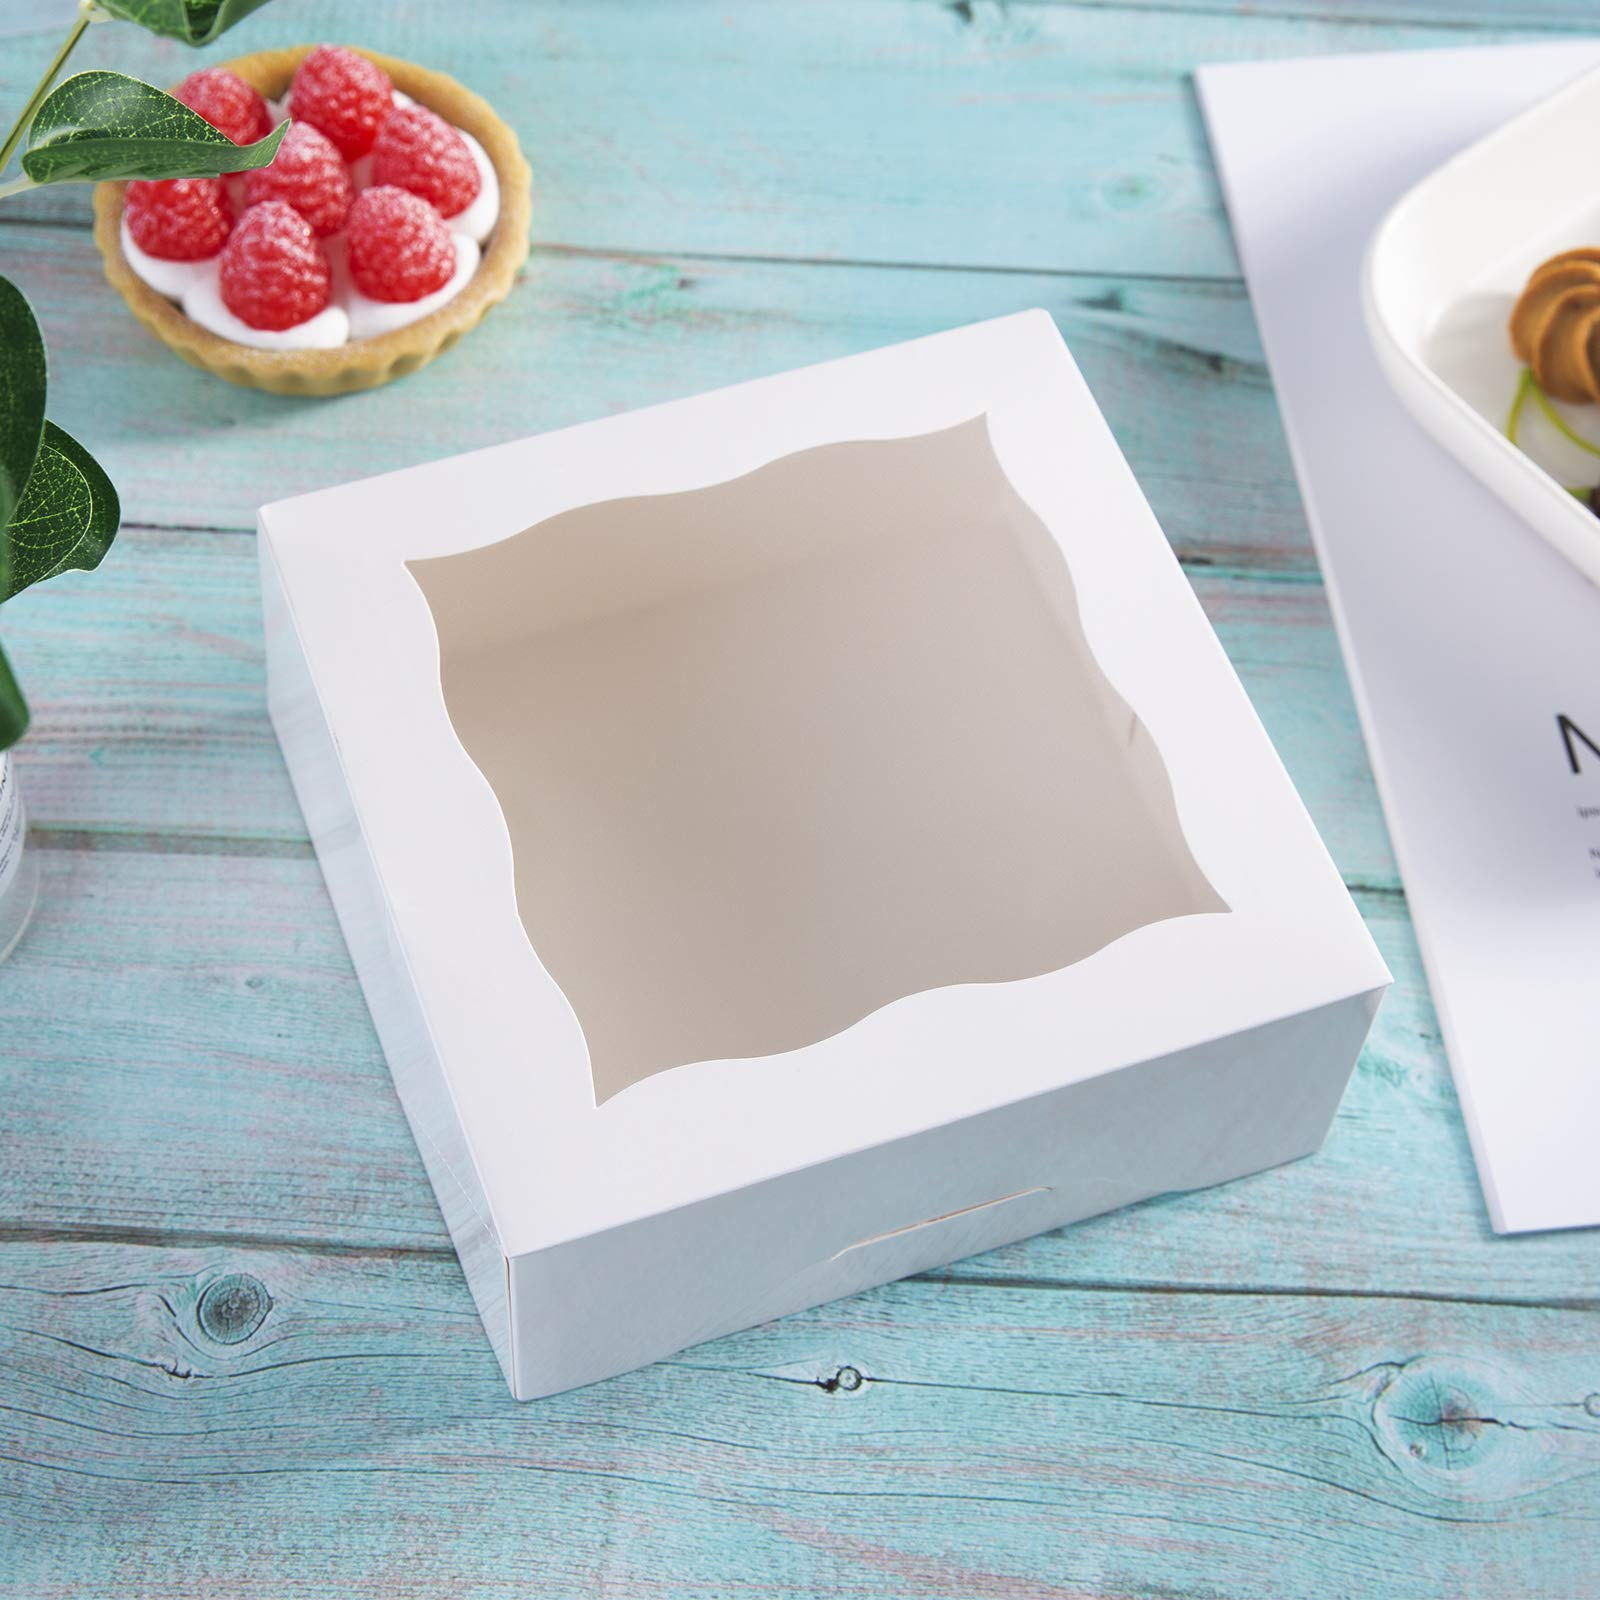 ONE MORE 6''White Bakery Boxes with pvc Window for Pie and Cookies Boxes Small Natural Craft Paper Box 6x6x2.5inch,12 of Pack by ONE MORE (Image #6)